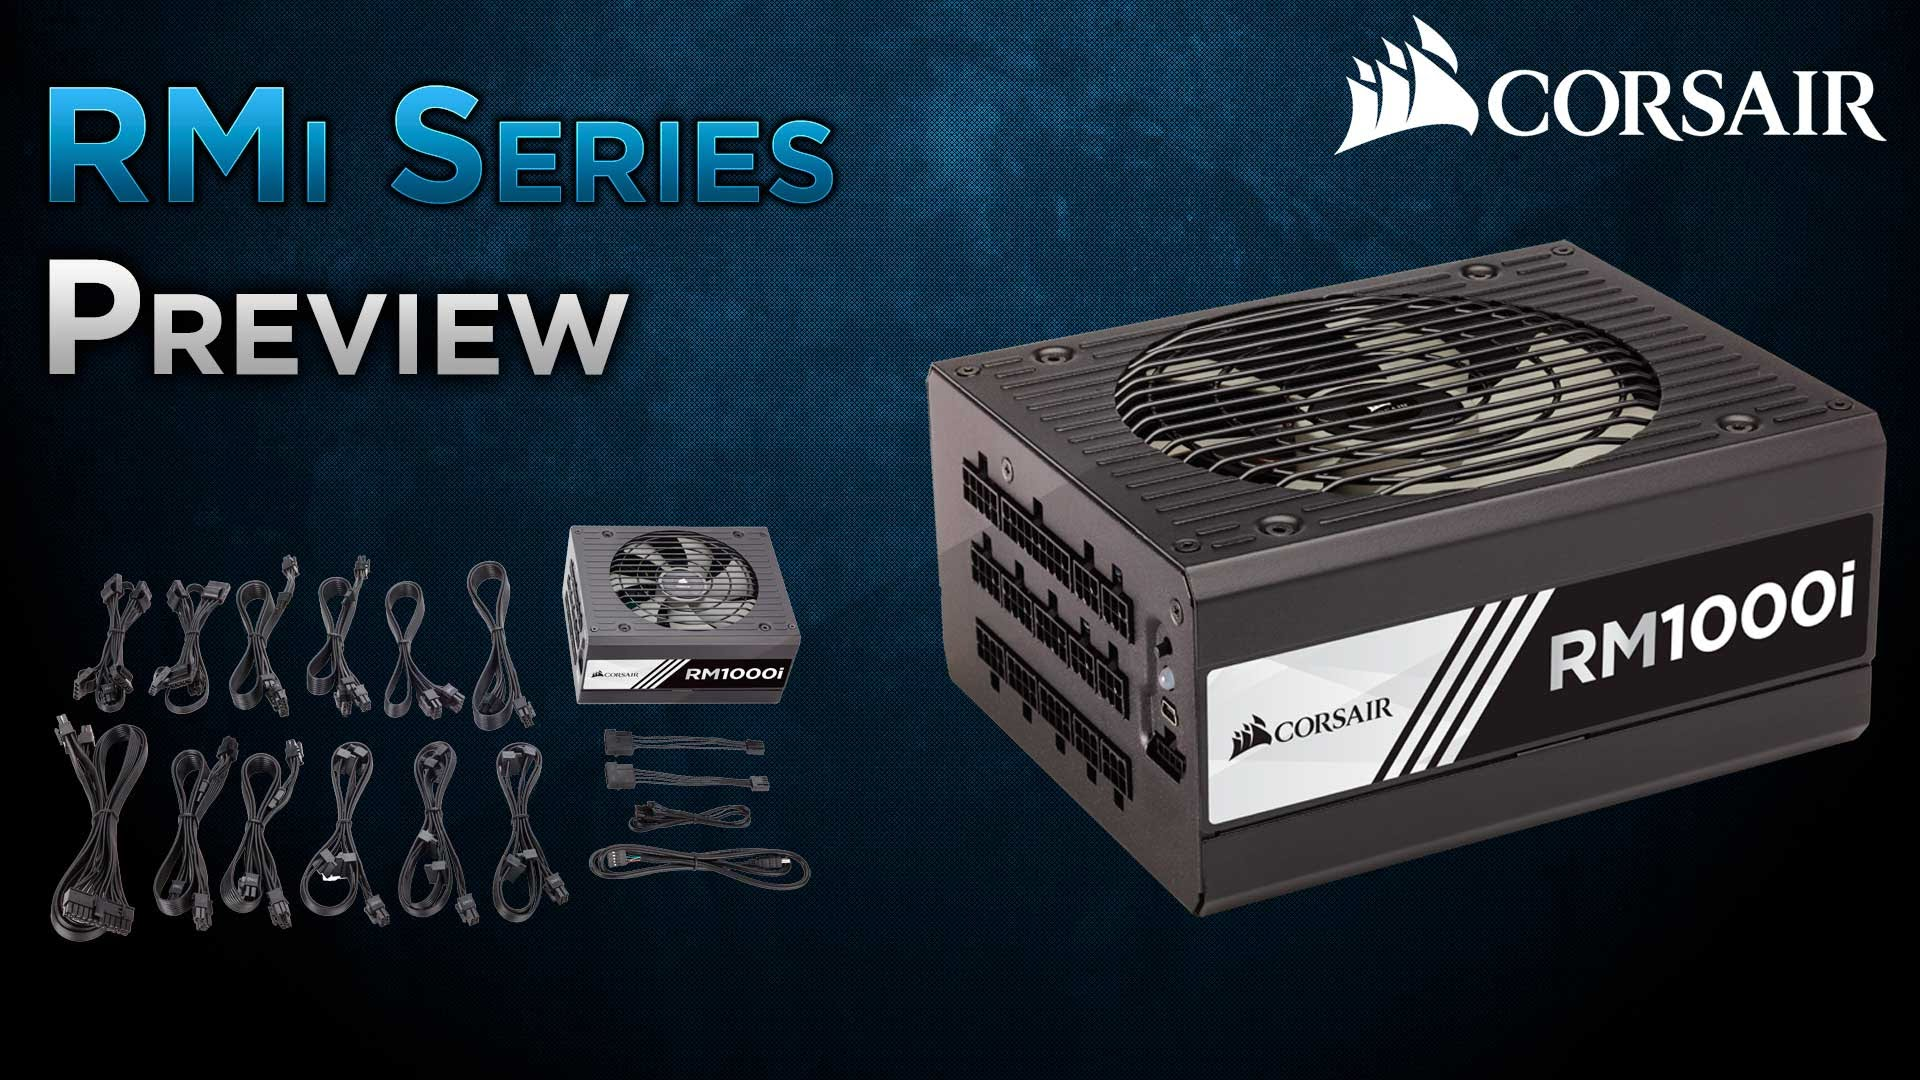 Corsair Rmi Series Rm1000i 1000w 80 Plus Gold Haswell Ready Full Thermostat Wire 20 Gauge 8 250 Ft Vinyl Jacketneweggcom Slide 1 Of 8show Larger Image Premium Components For Great Performance With Very